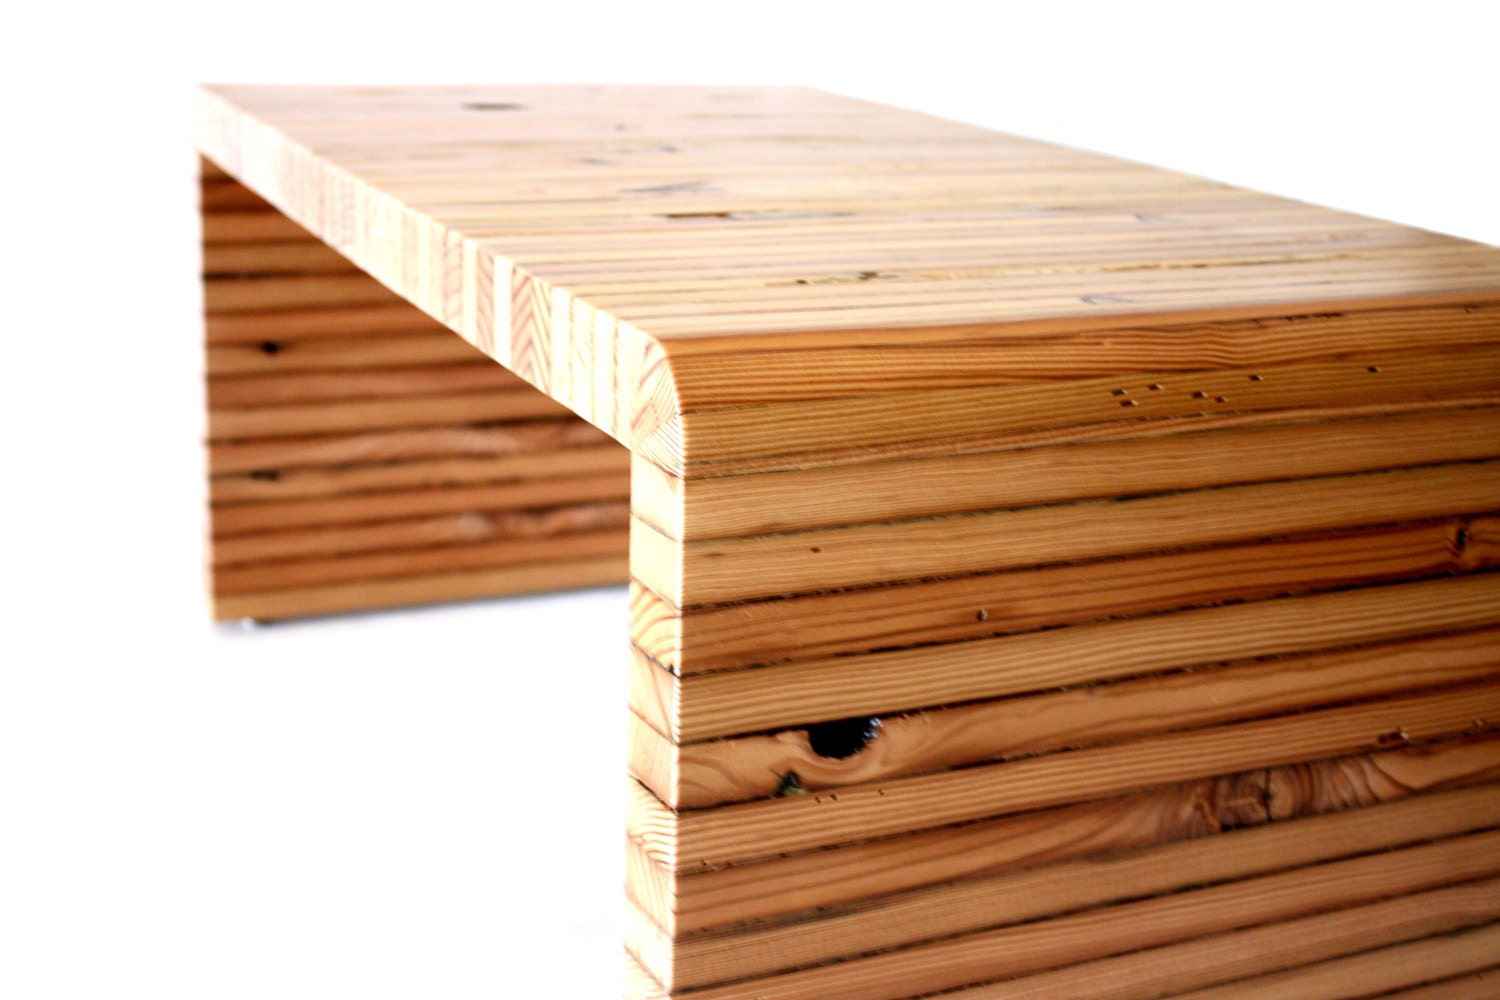 Reclaimed coffee table wood bench barn wood handmade by for Why is wood sustainable